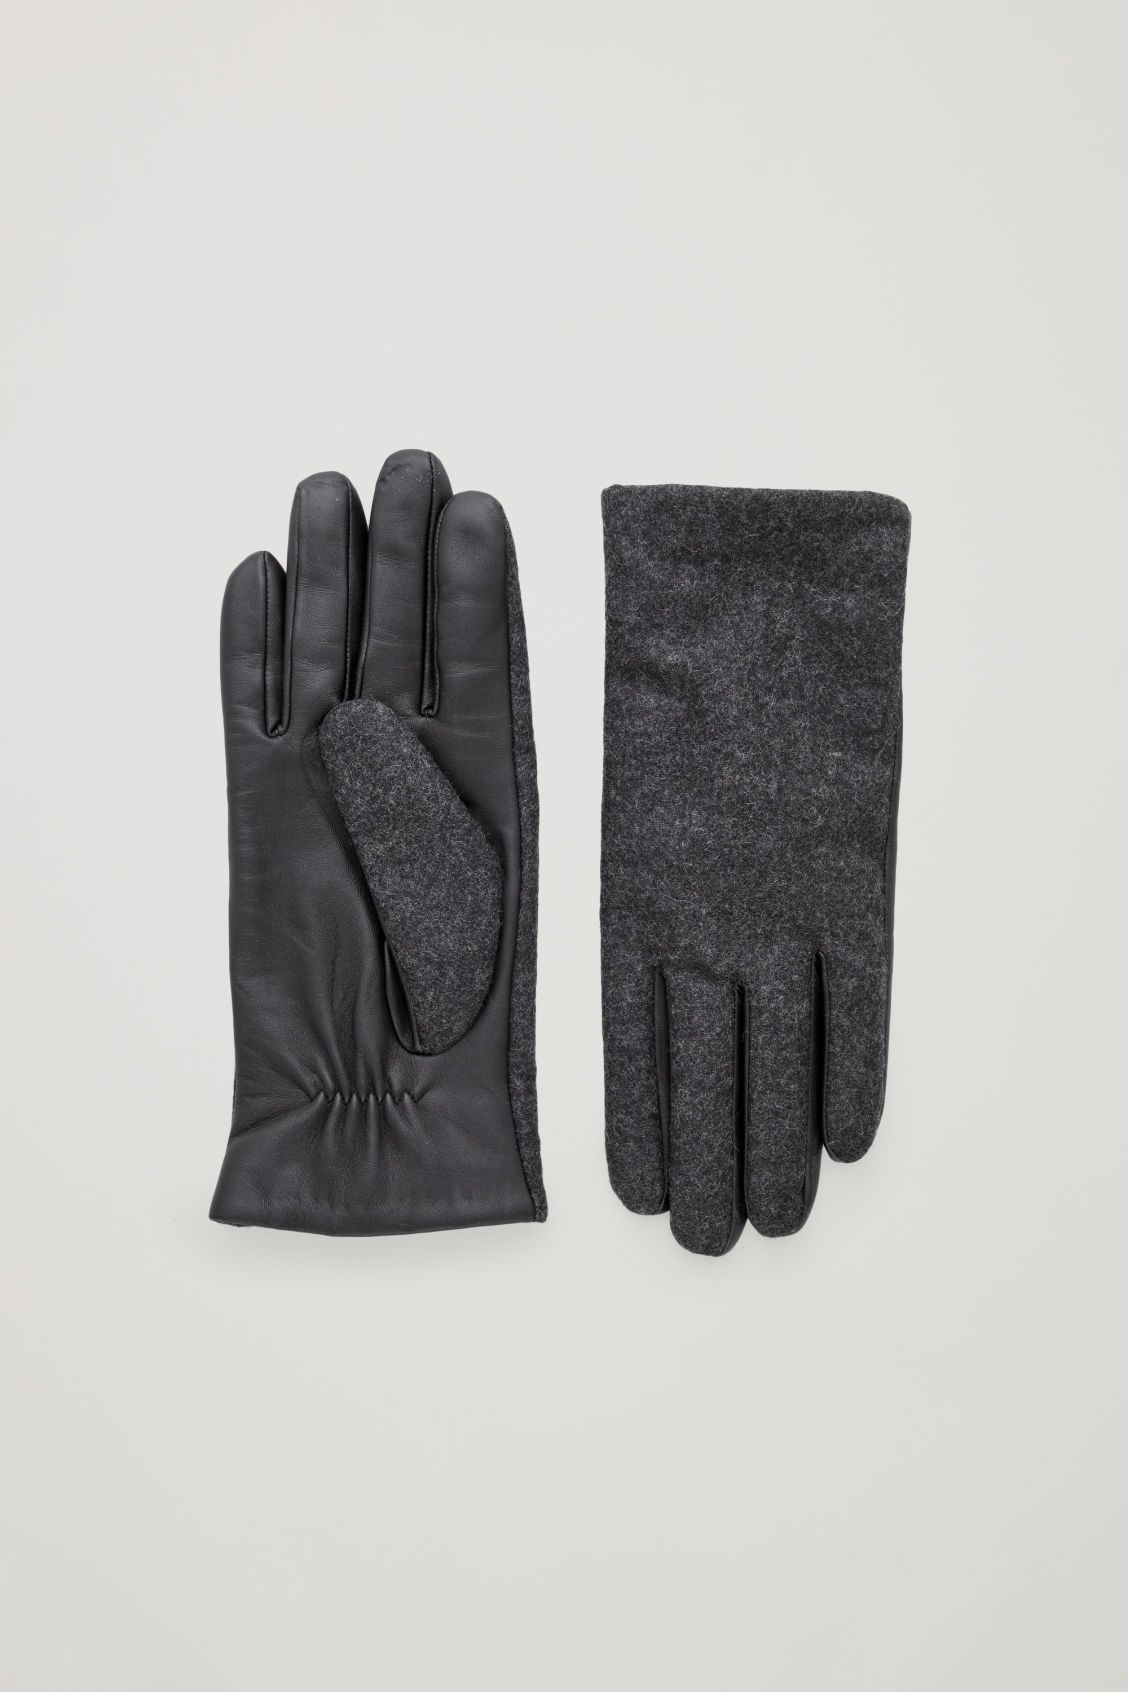 fa6952e01fff4b LEATHER AND WOOL GLOVES - Dark Grey - Gloves - COS | Winter ...